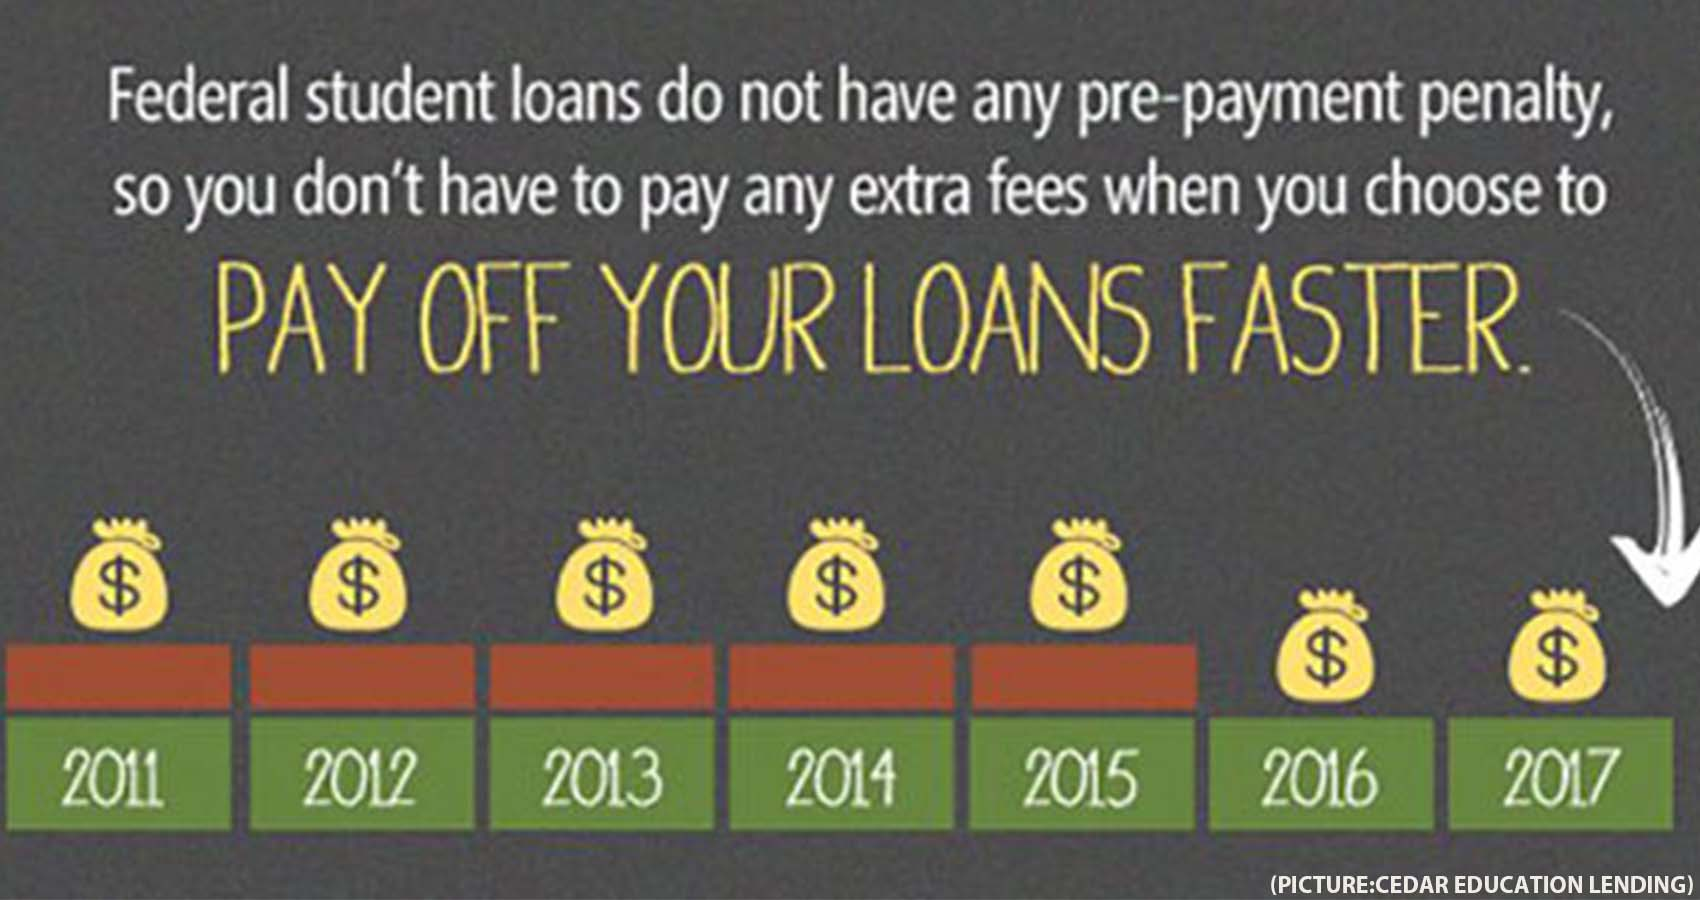 Take Advantage of This 'Fantastic Opportunity' To Pay Off Student Loans